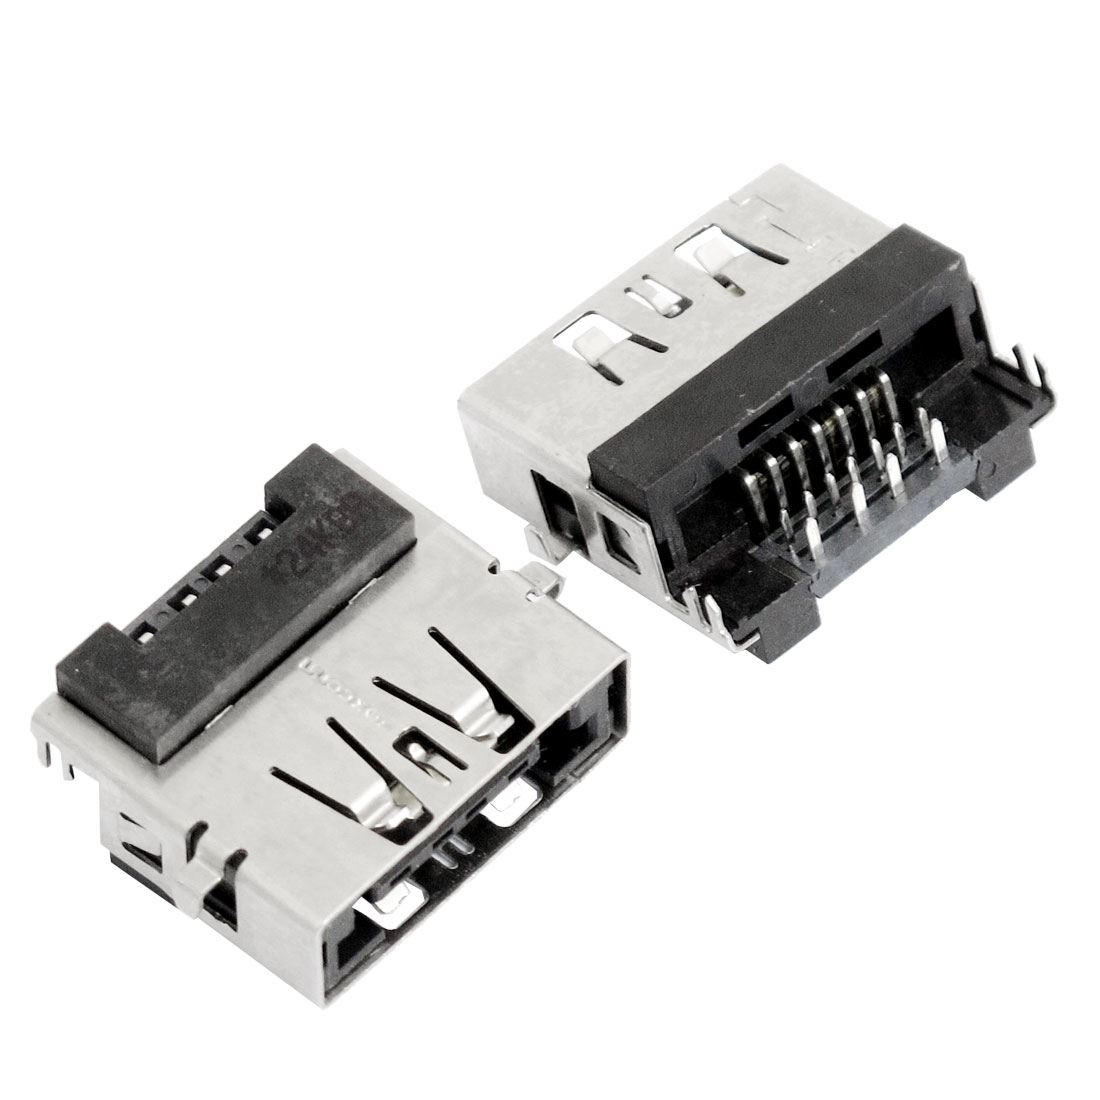 2 Pcs Right Angle DIP Female ESATA + USB Socket Connectors